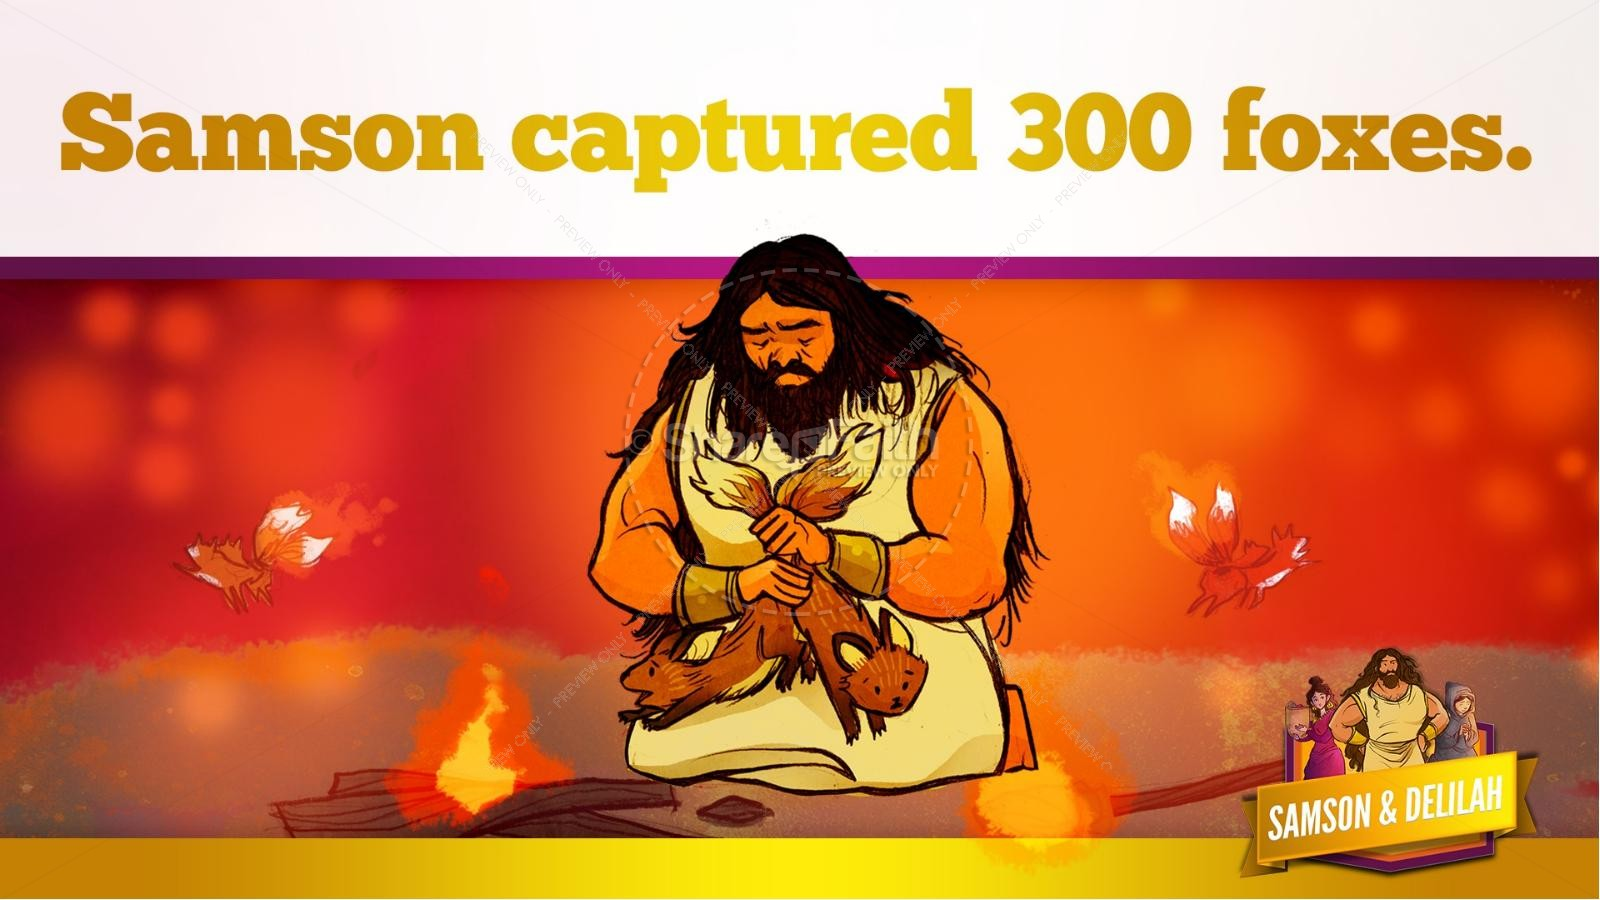 Samson and Delilah Kids Bible Stories | slide 41